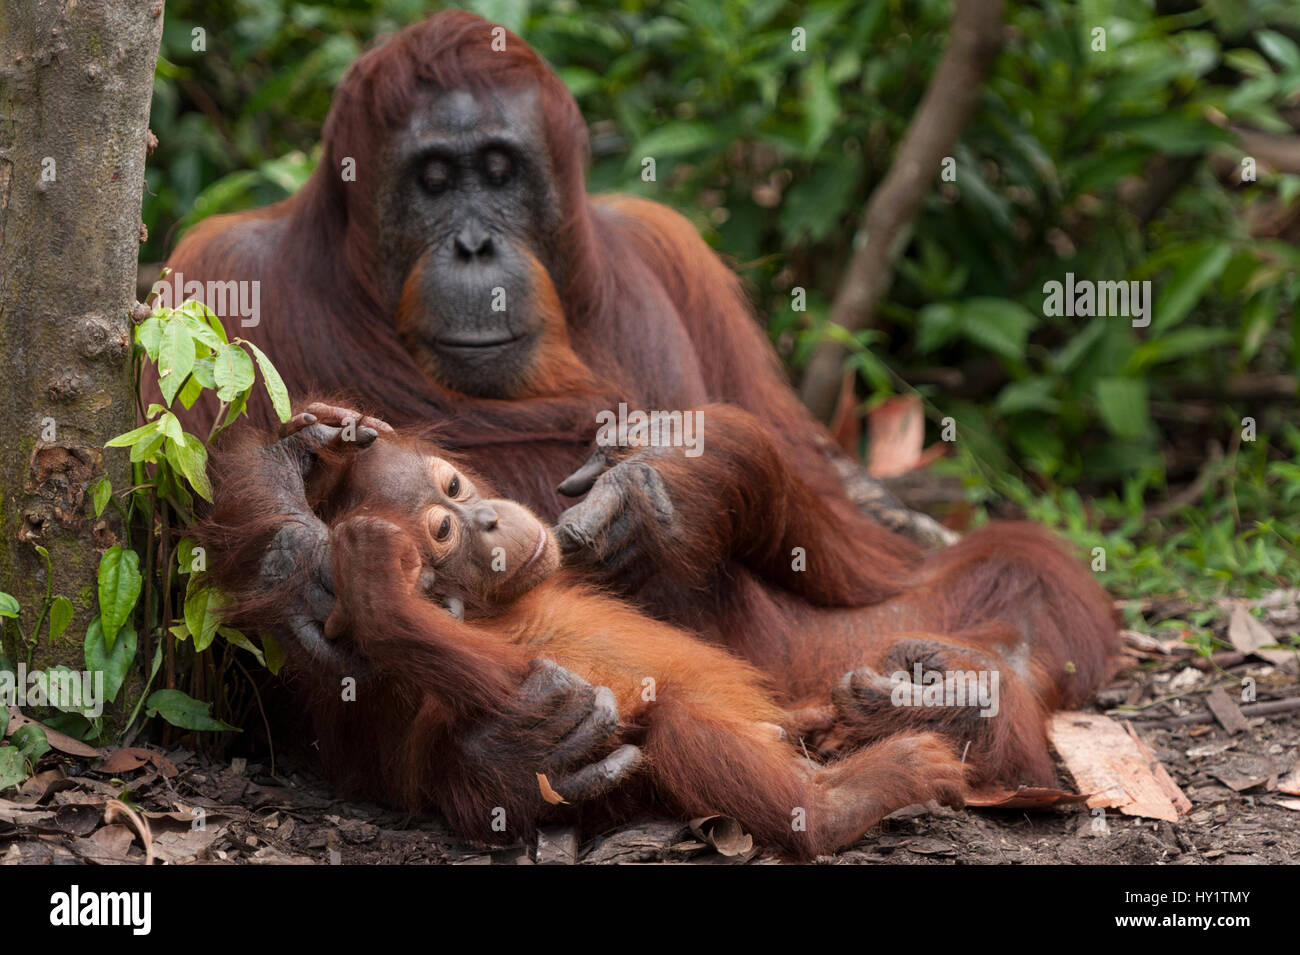 Bornean Orangutan (Pongo pygmaeus wurmbii) mother and baby, Tanjung Puting National Park, Borneo, Central Kalimantan, - Stock Image